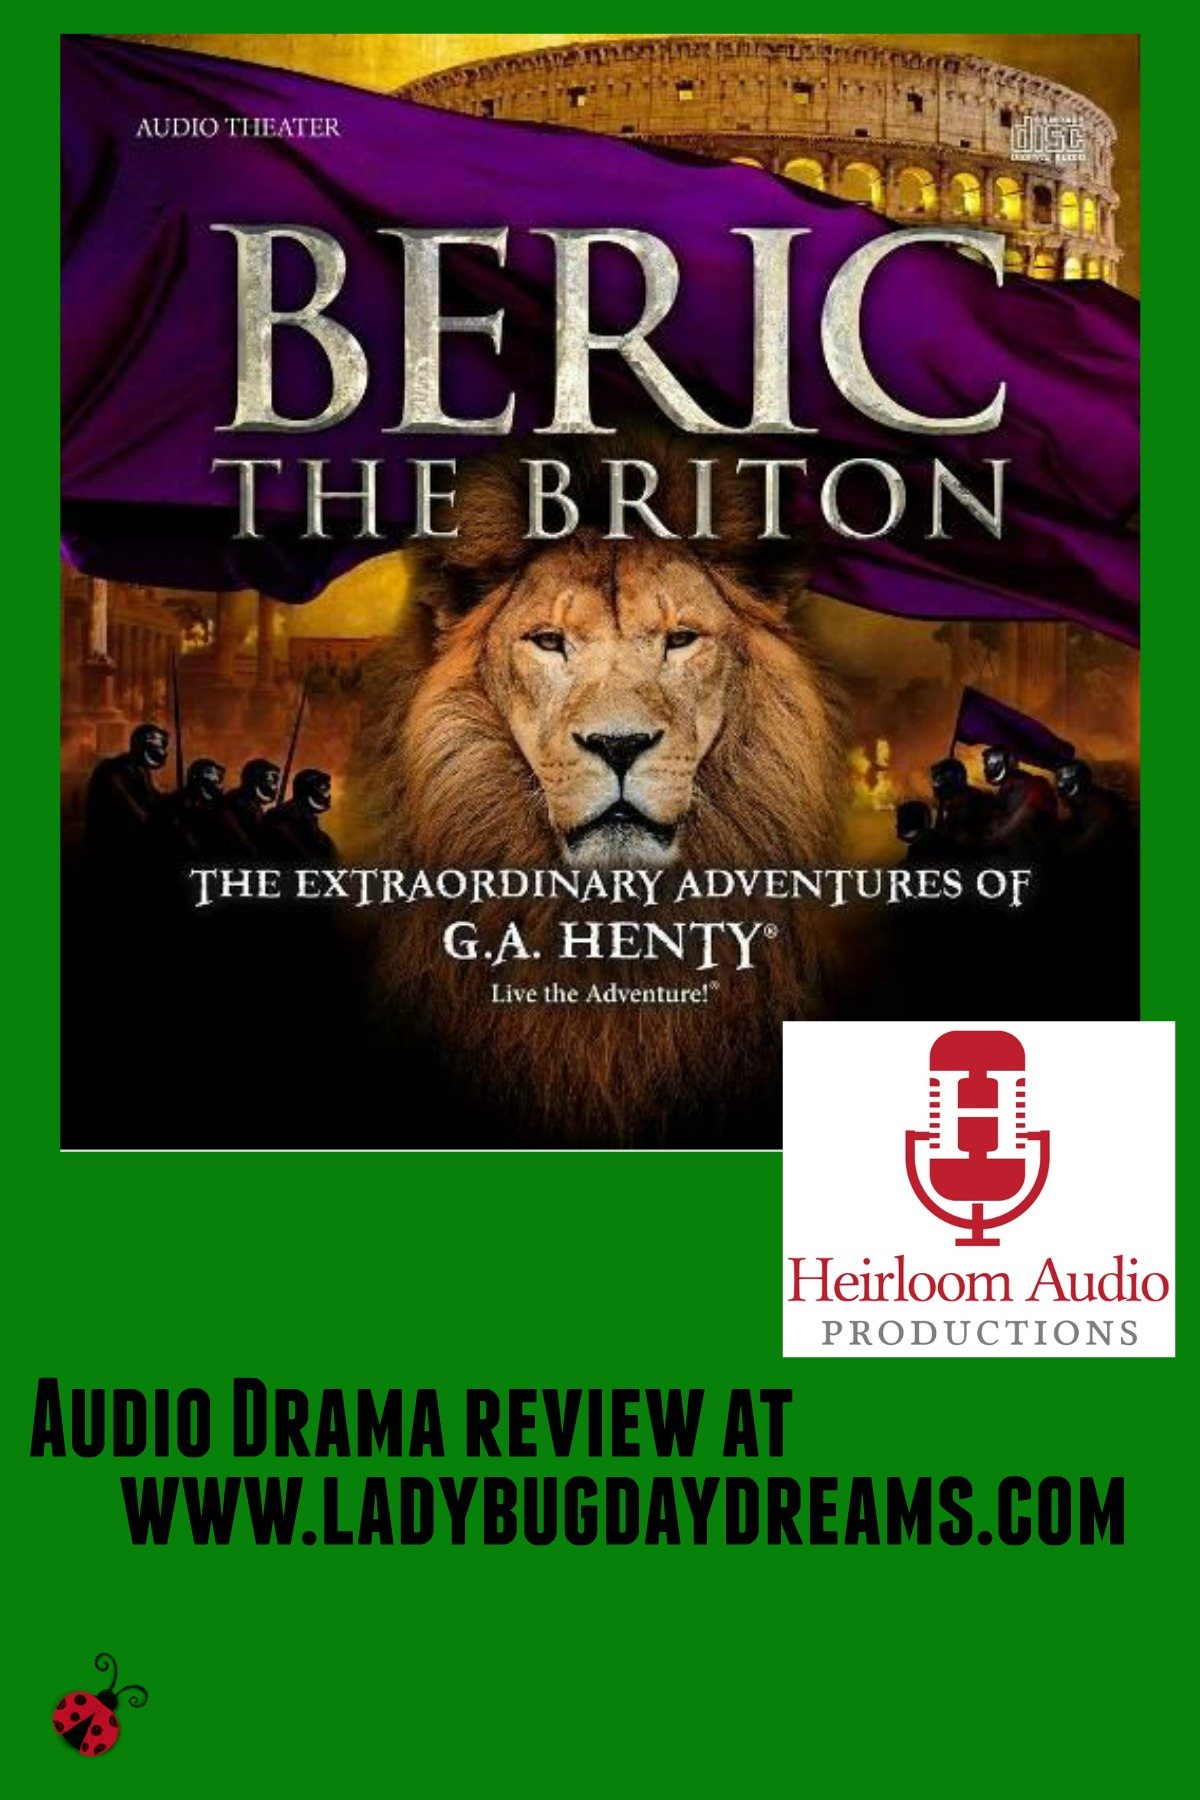 Beric the Briton review at Ladybug Daydreams